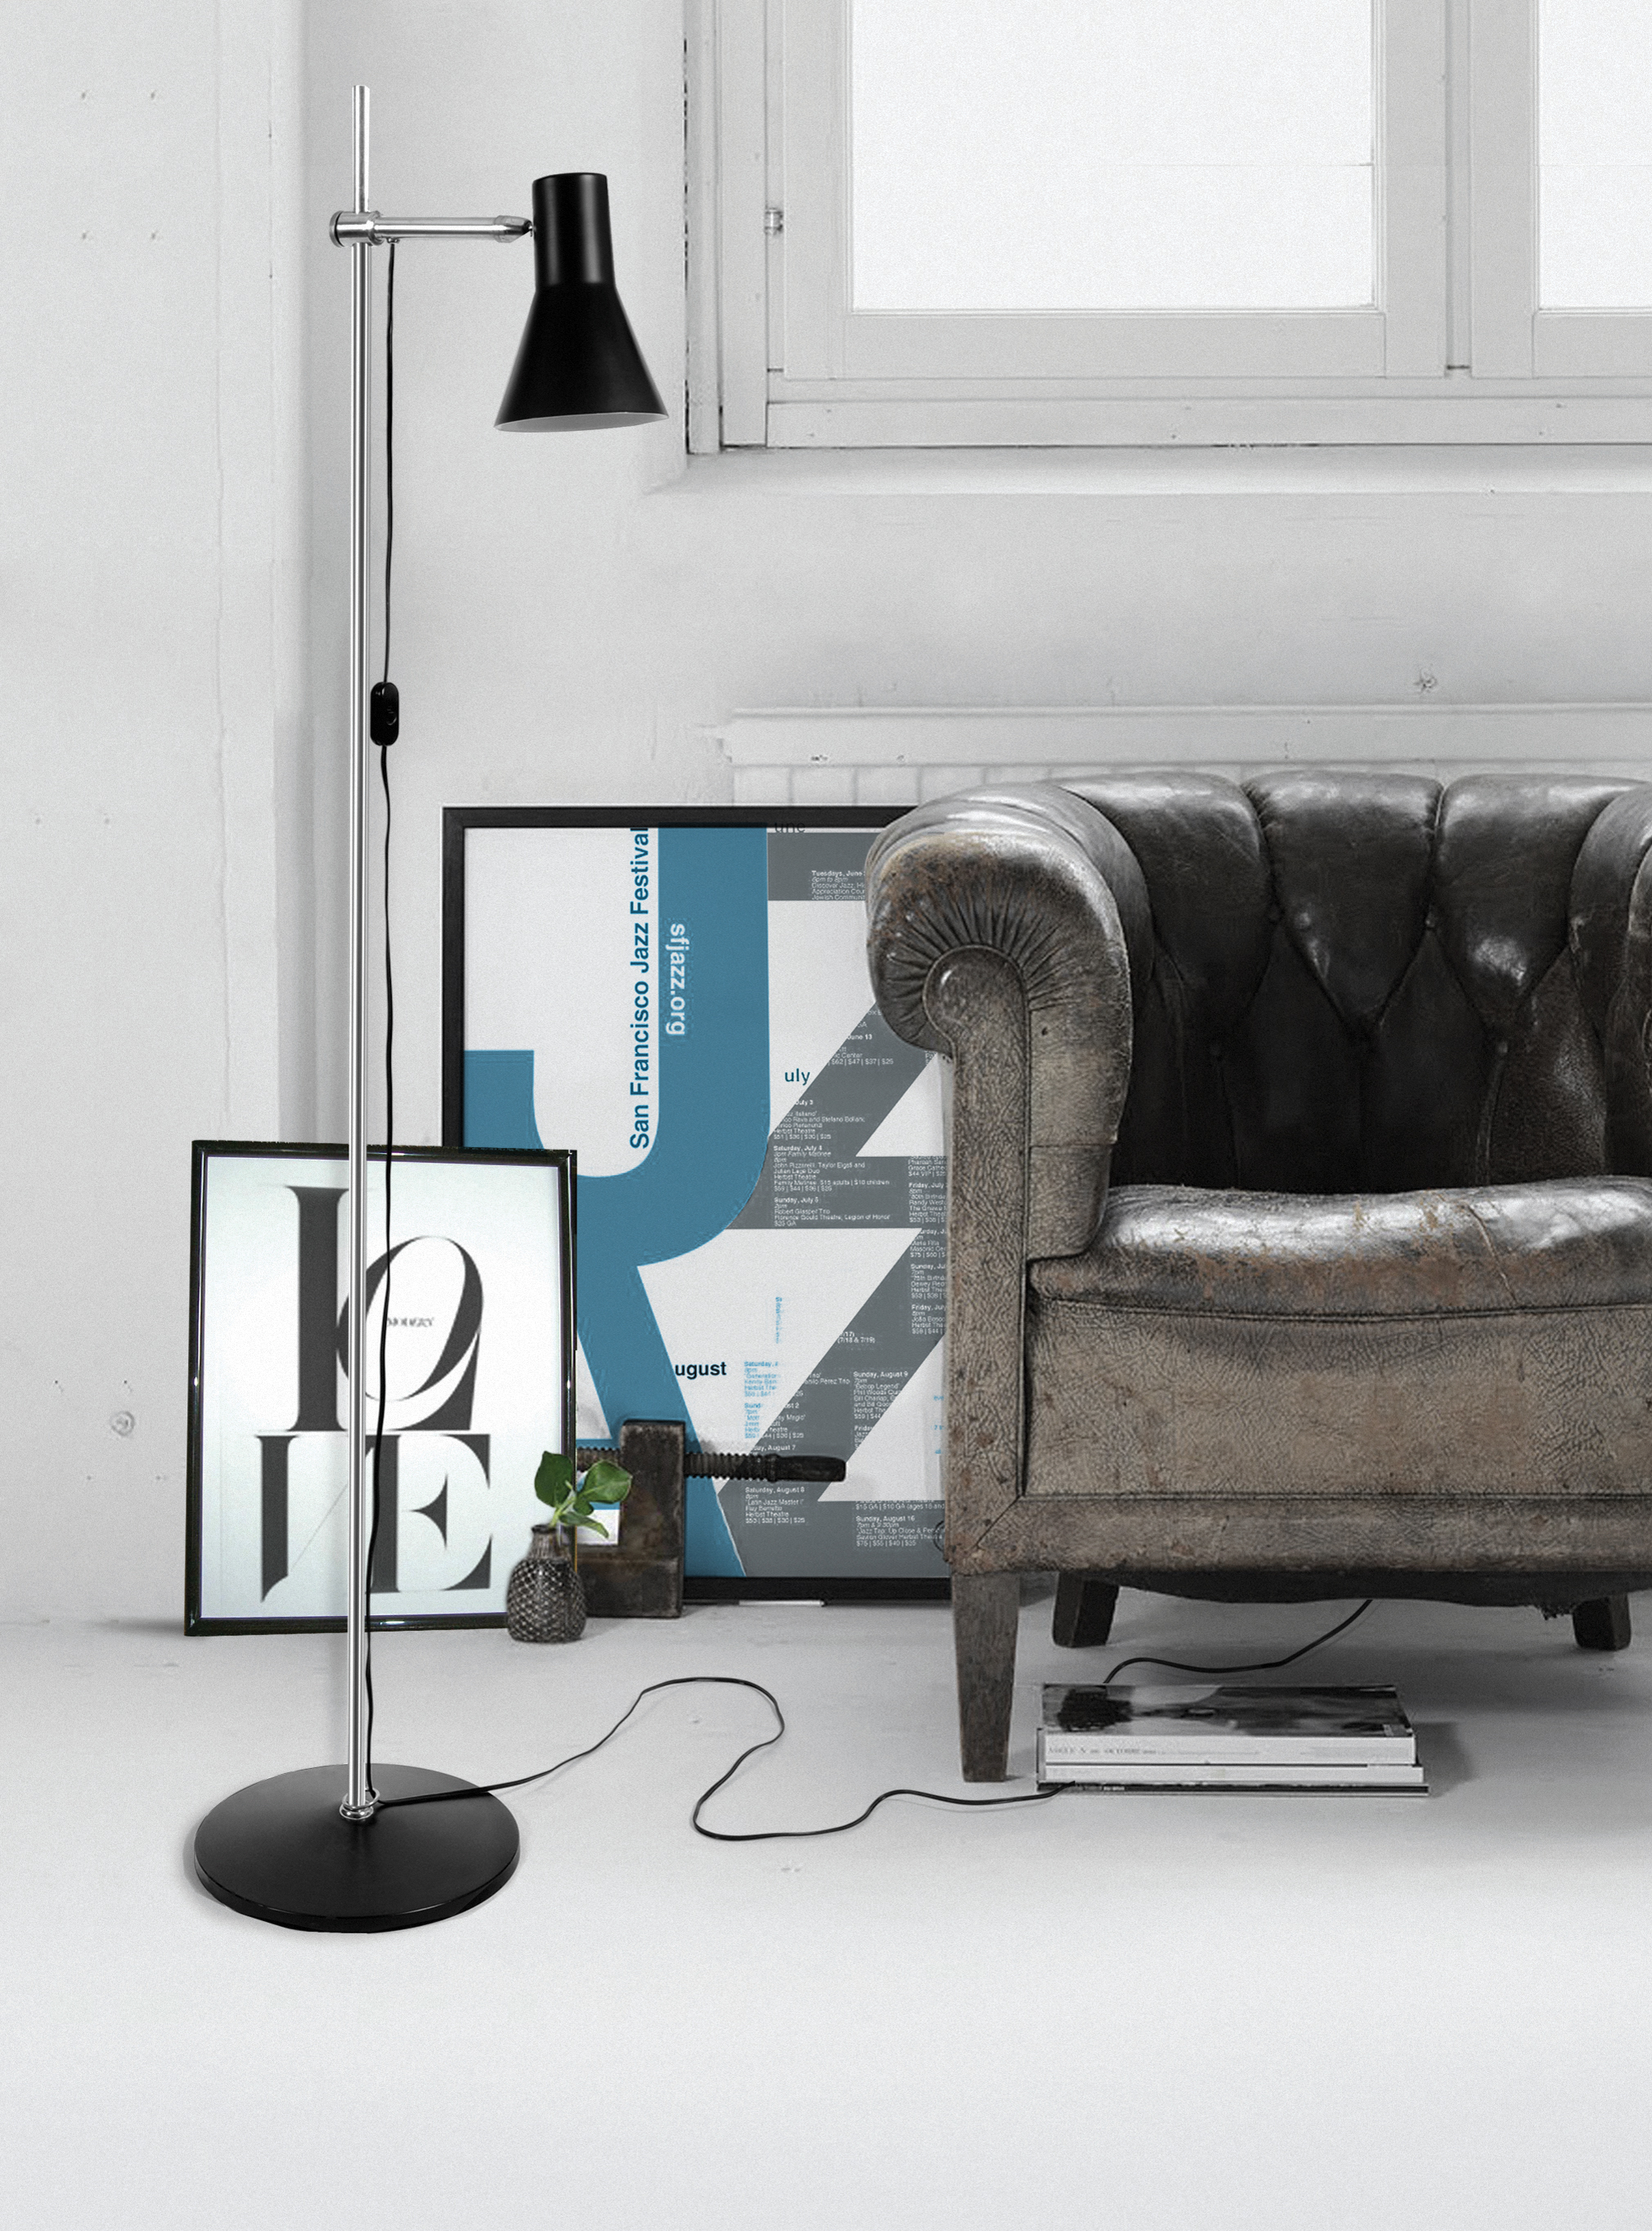 """Floor lamps are also a great choice! They can provide you the right lighting and at the same time being a nice piece to decorate some empty space at your office. The 1 light adjustable head floor lamp with matte black and matte white accents has a simplistic and sleek design featuring a black textile cord and an adaptable shade. It's all customized. This lamp can reach 70.5"""" inches what allows you to direct light anywhere a task light is needed whichmakes the perfect floor lamp to your office space."""